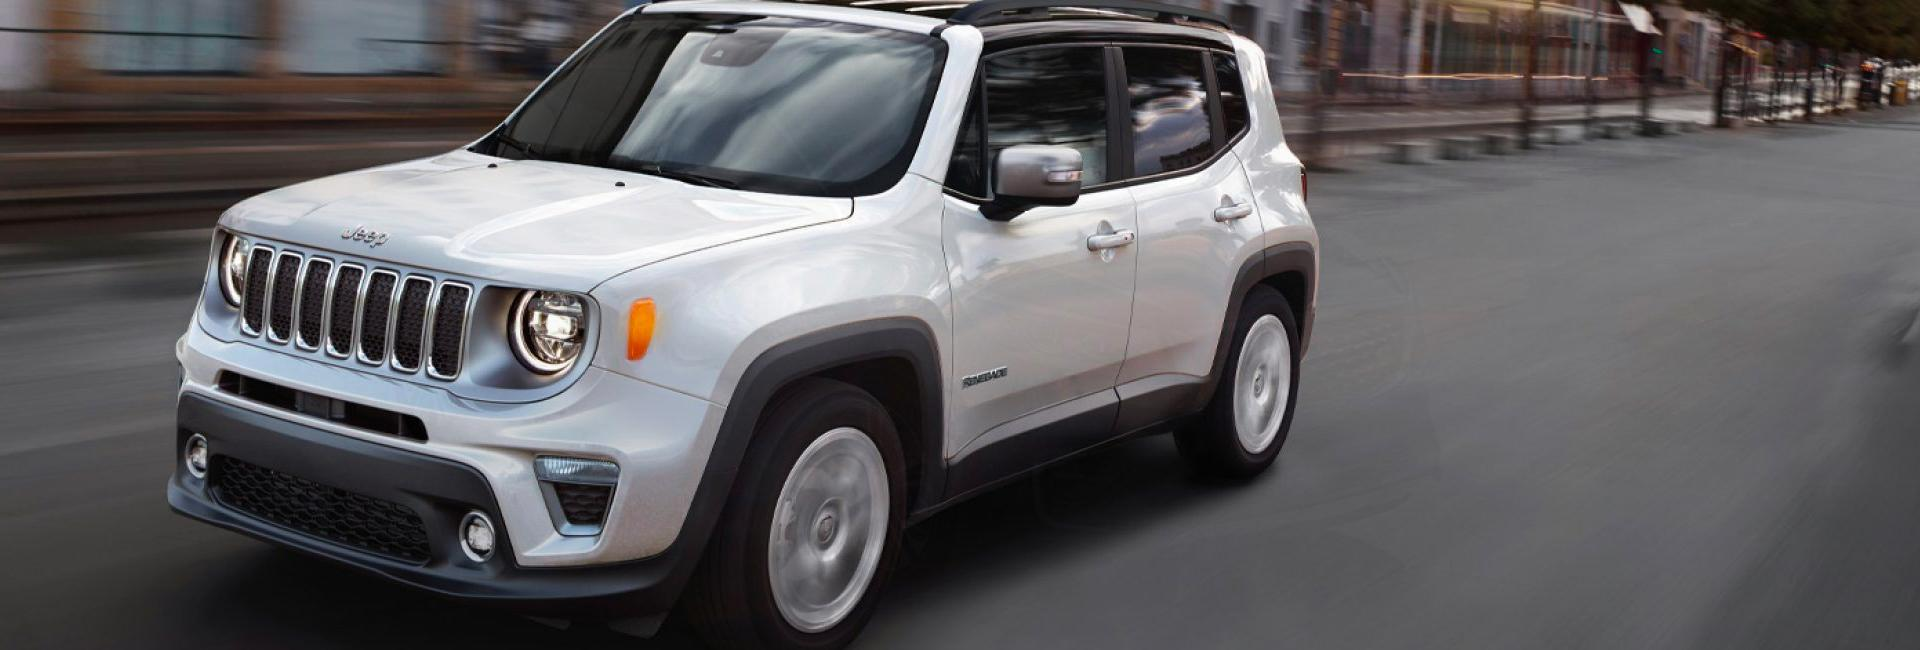 Picture of the 2020 Jeep Renegade for sale at Spitzer Jeep Homestead Florida